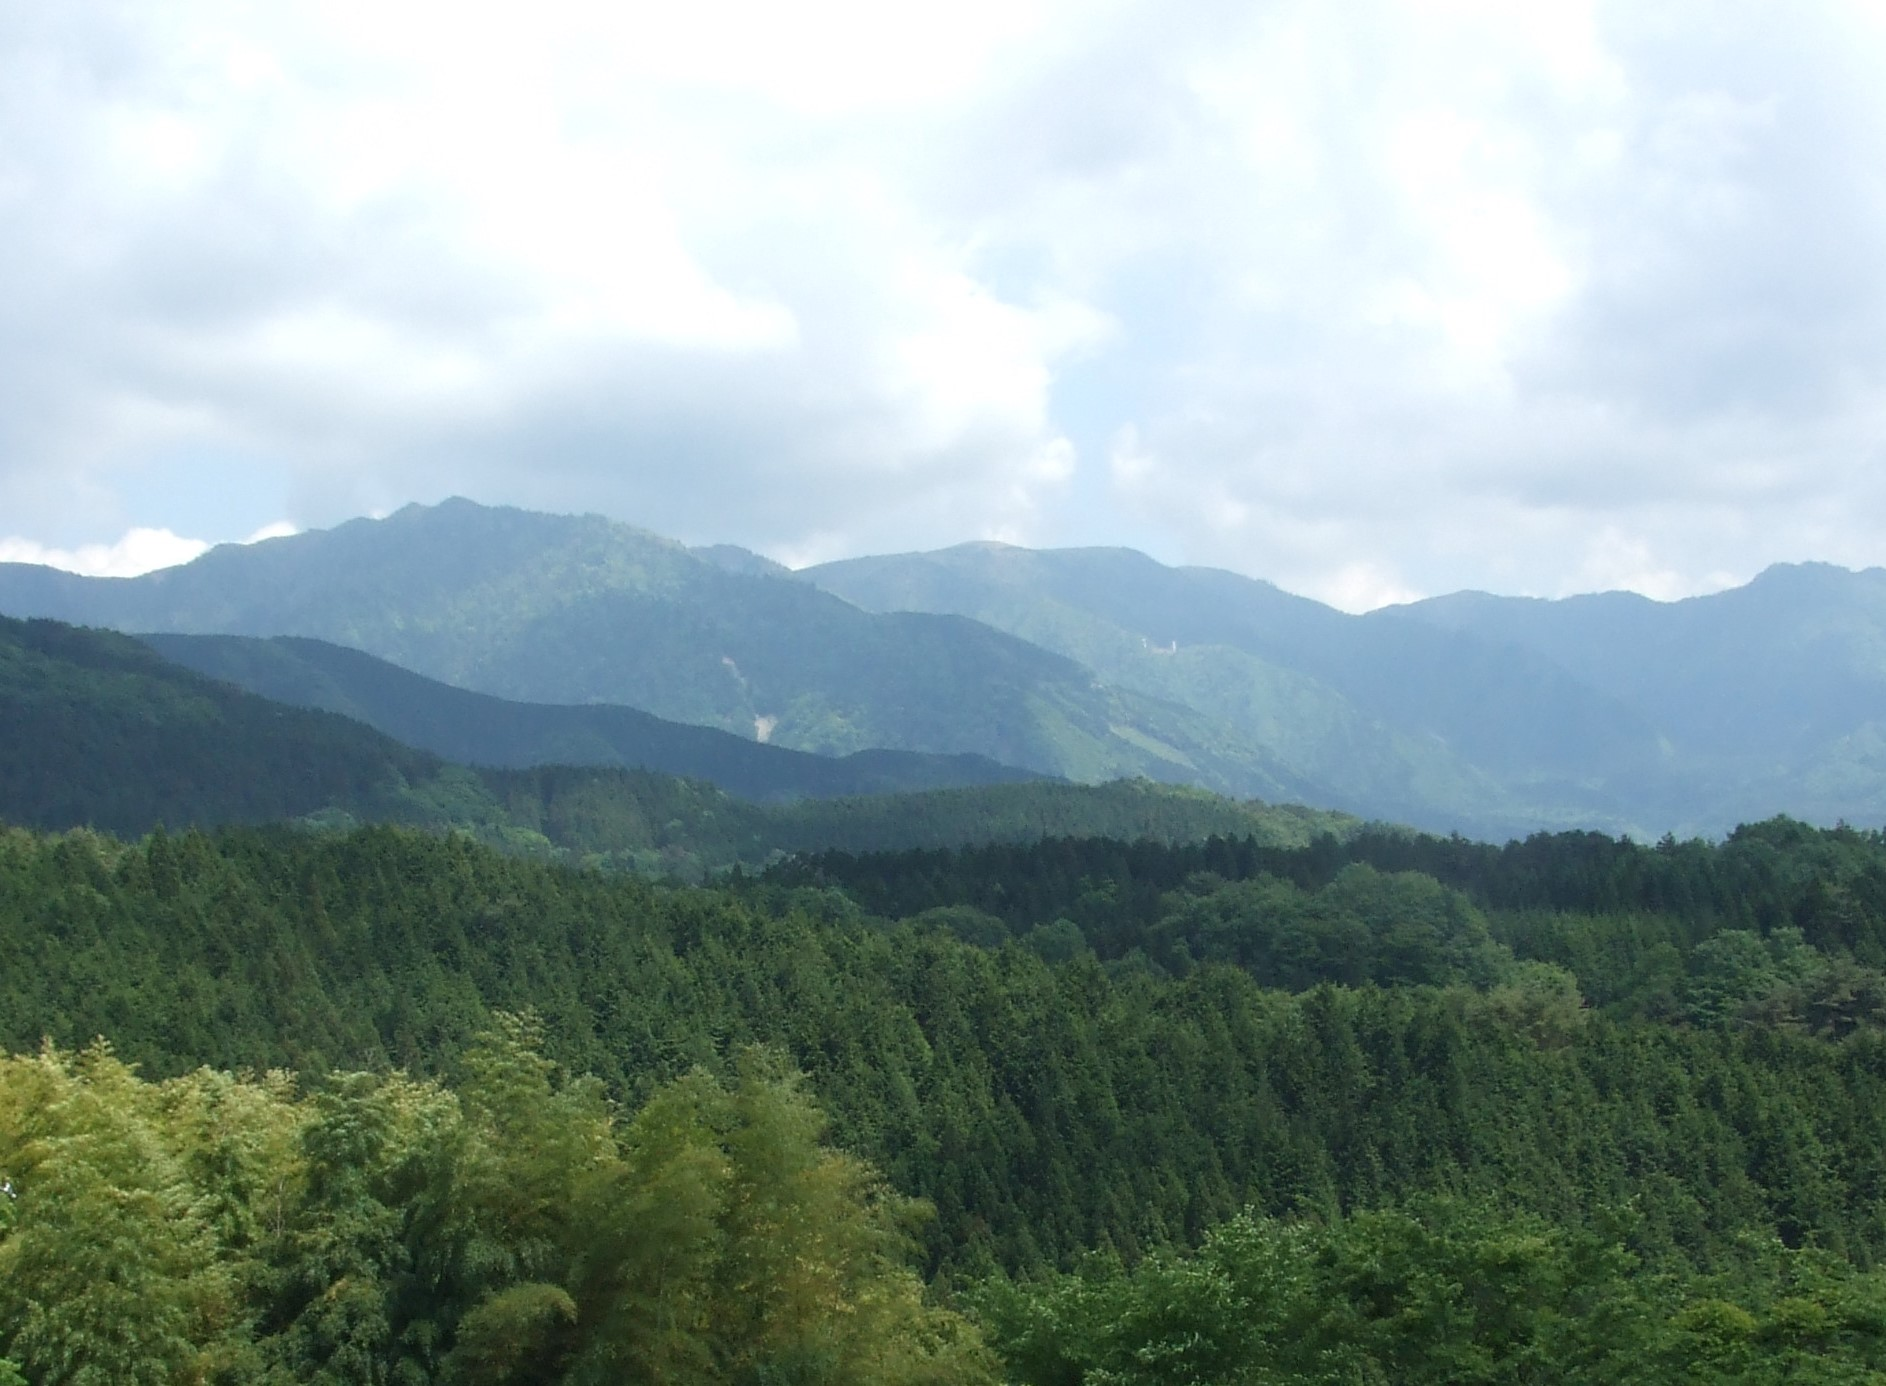 The Japanese Mountains